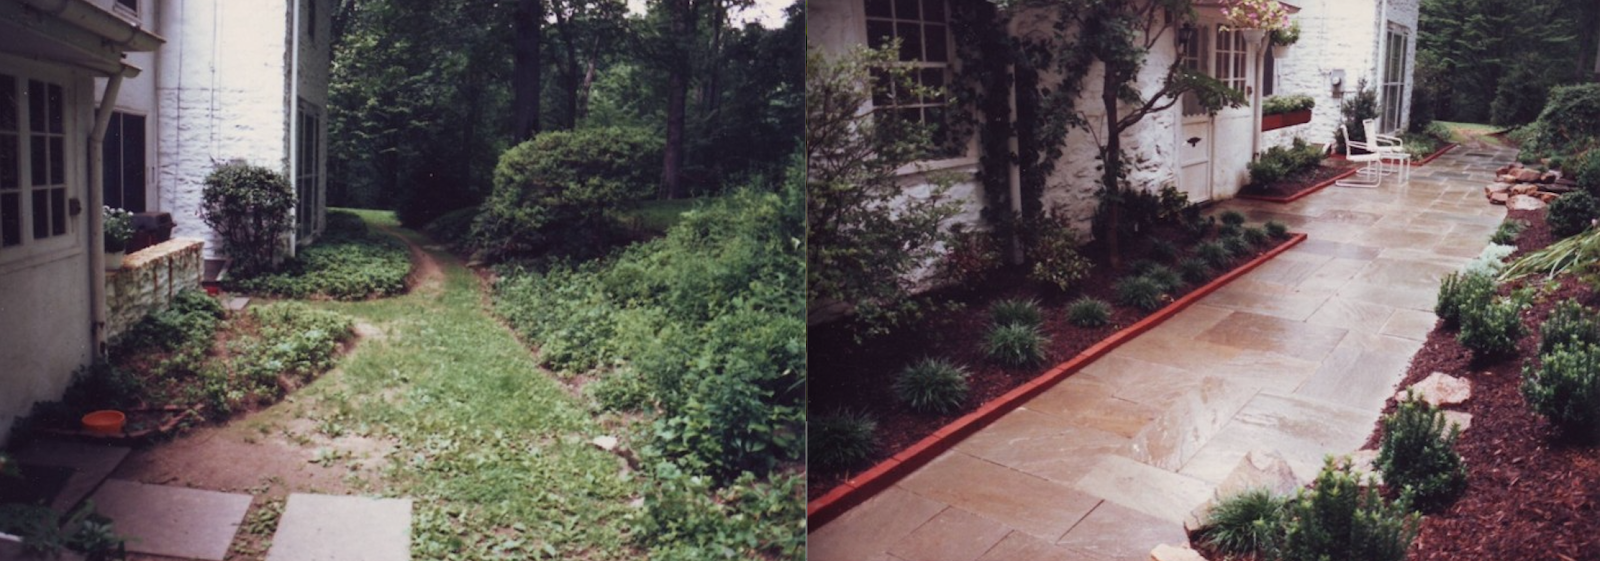 Side-by-side pathway transformation